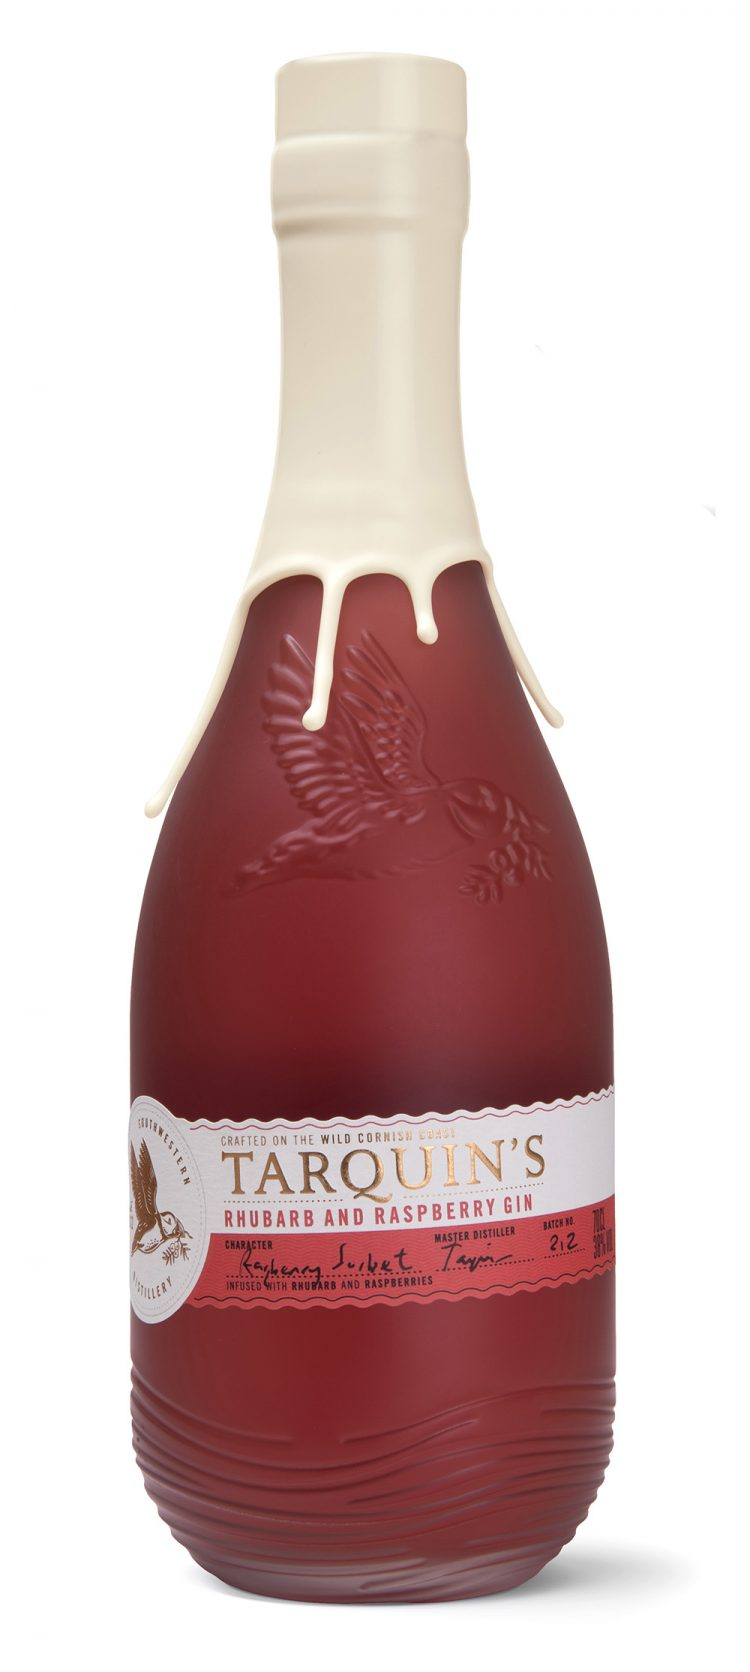 Tarquin's Cornish Fruit Gins Bottle